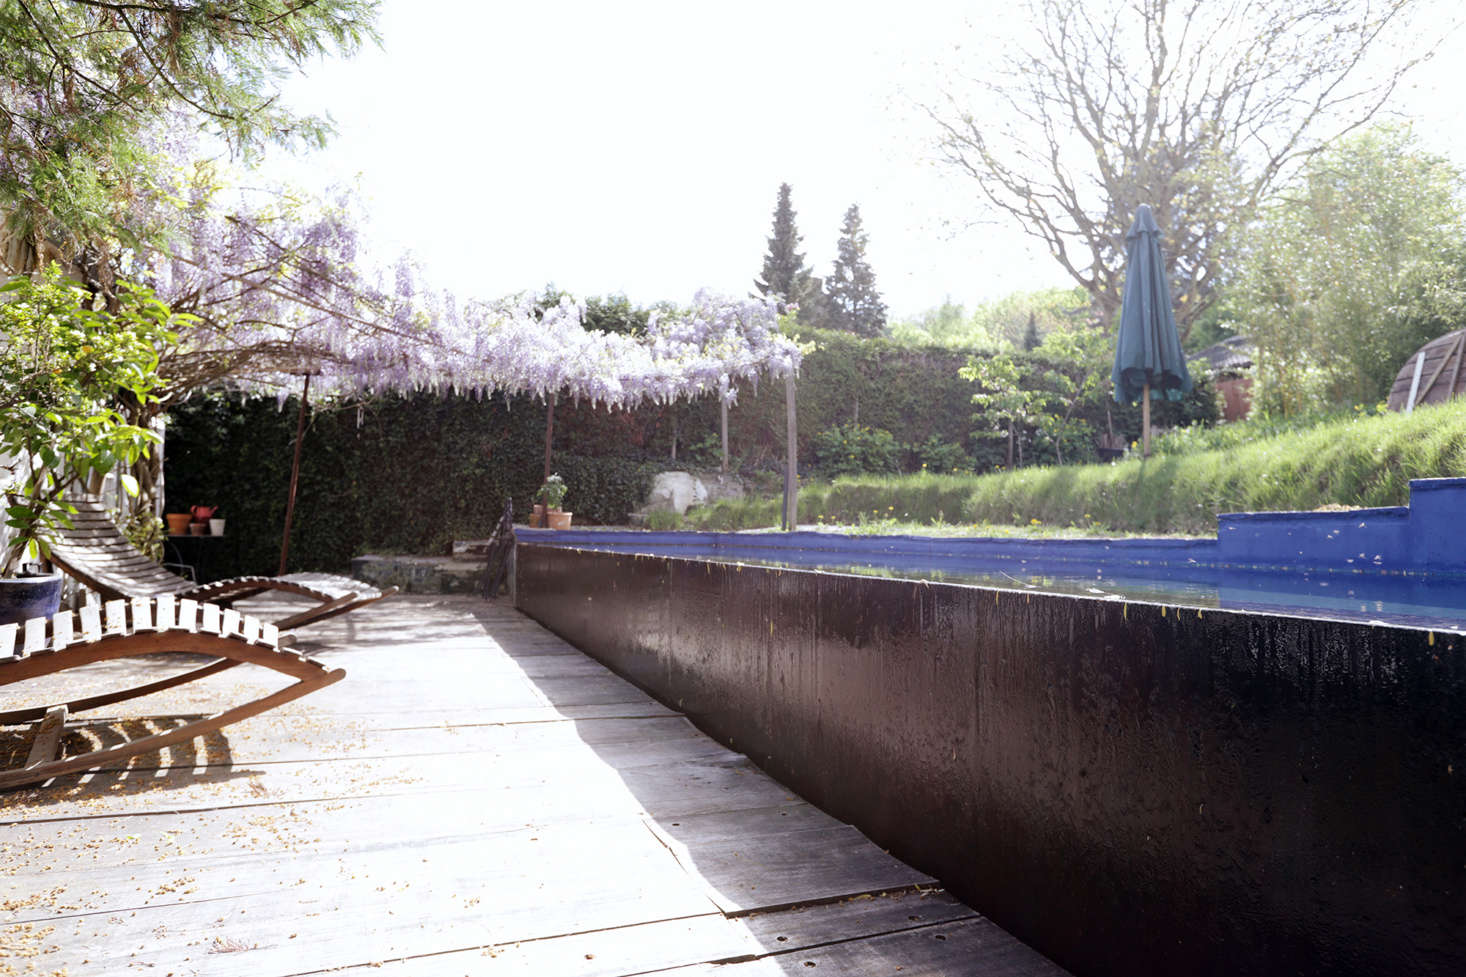 """The idea for a concrete pool came by an accident. """"During construction there was a storm and water flooded the garden,"""" he explains. """"Then the sun came out and there was this shimmering light throughout the entire house reflected from the water, so I figured we needed a pool."""""""